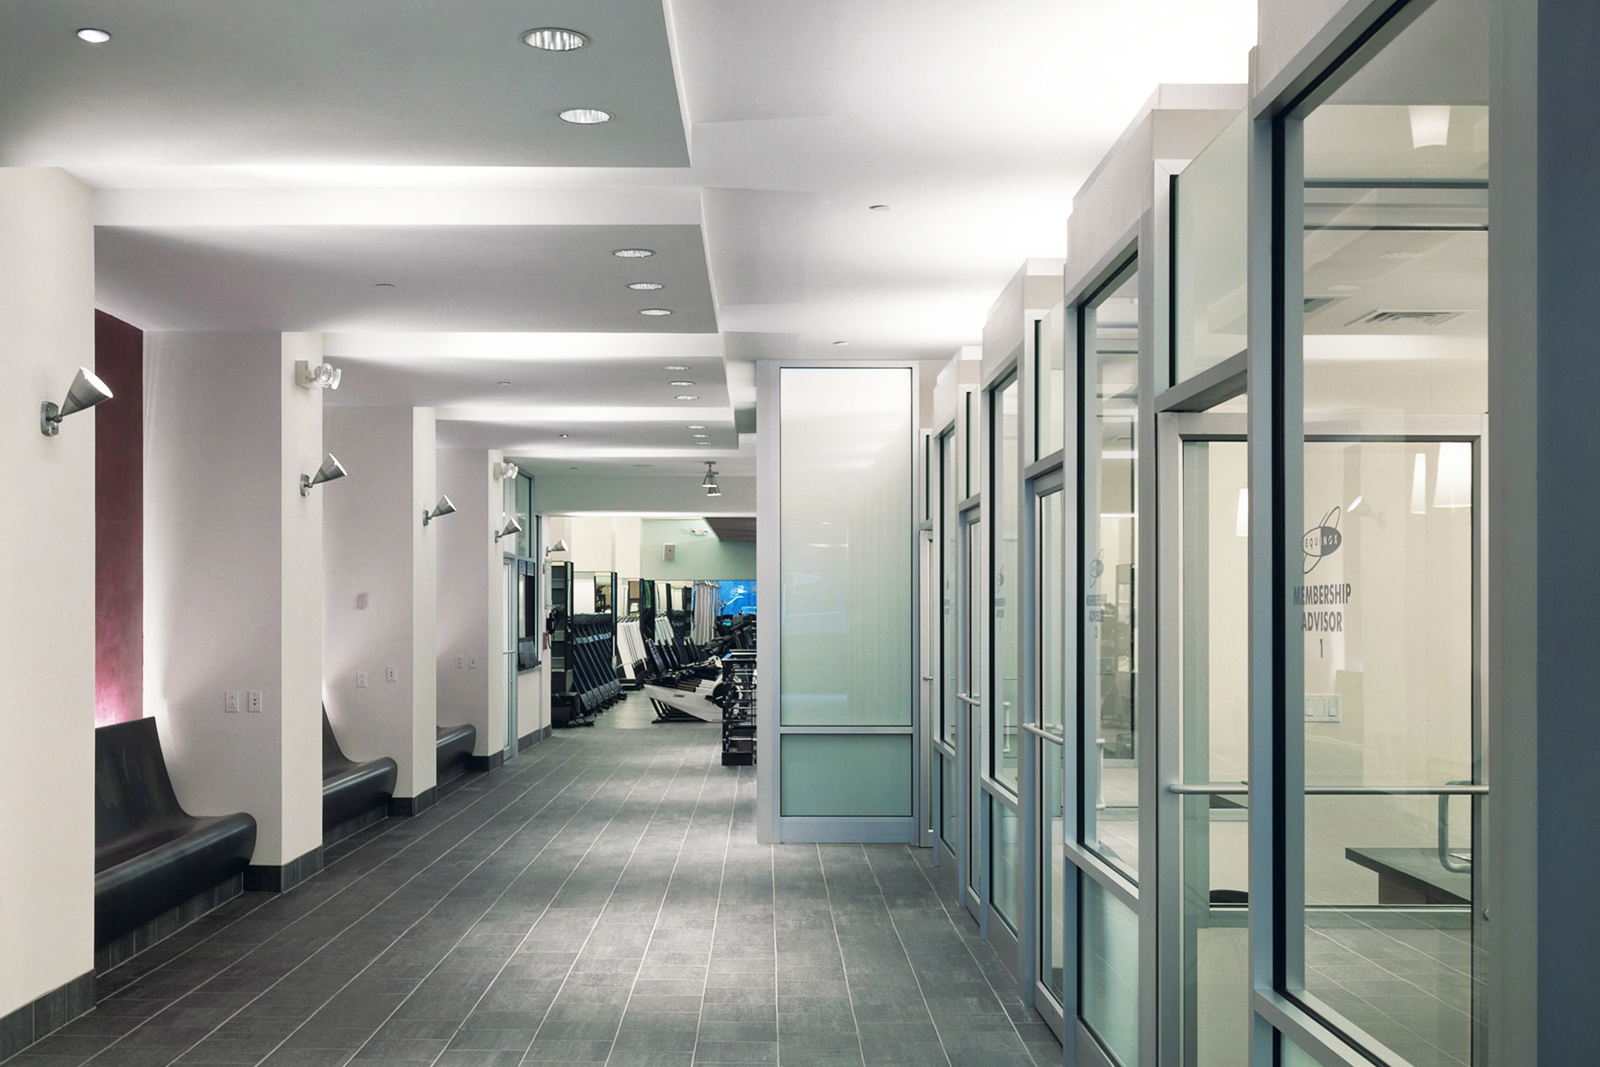 01-res4-resolution-4-architecture-modern-commercial-equinox-fitness-club-interior.jpg